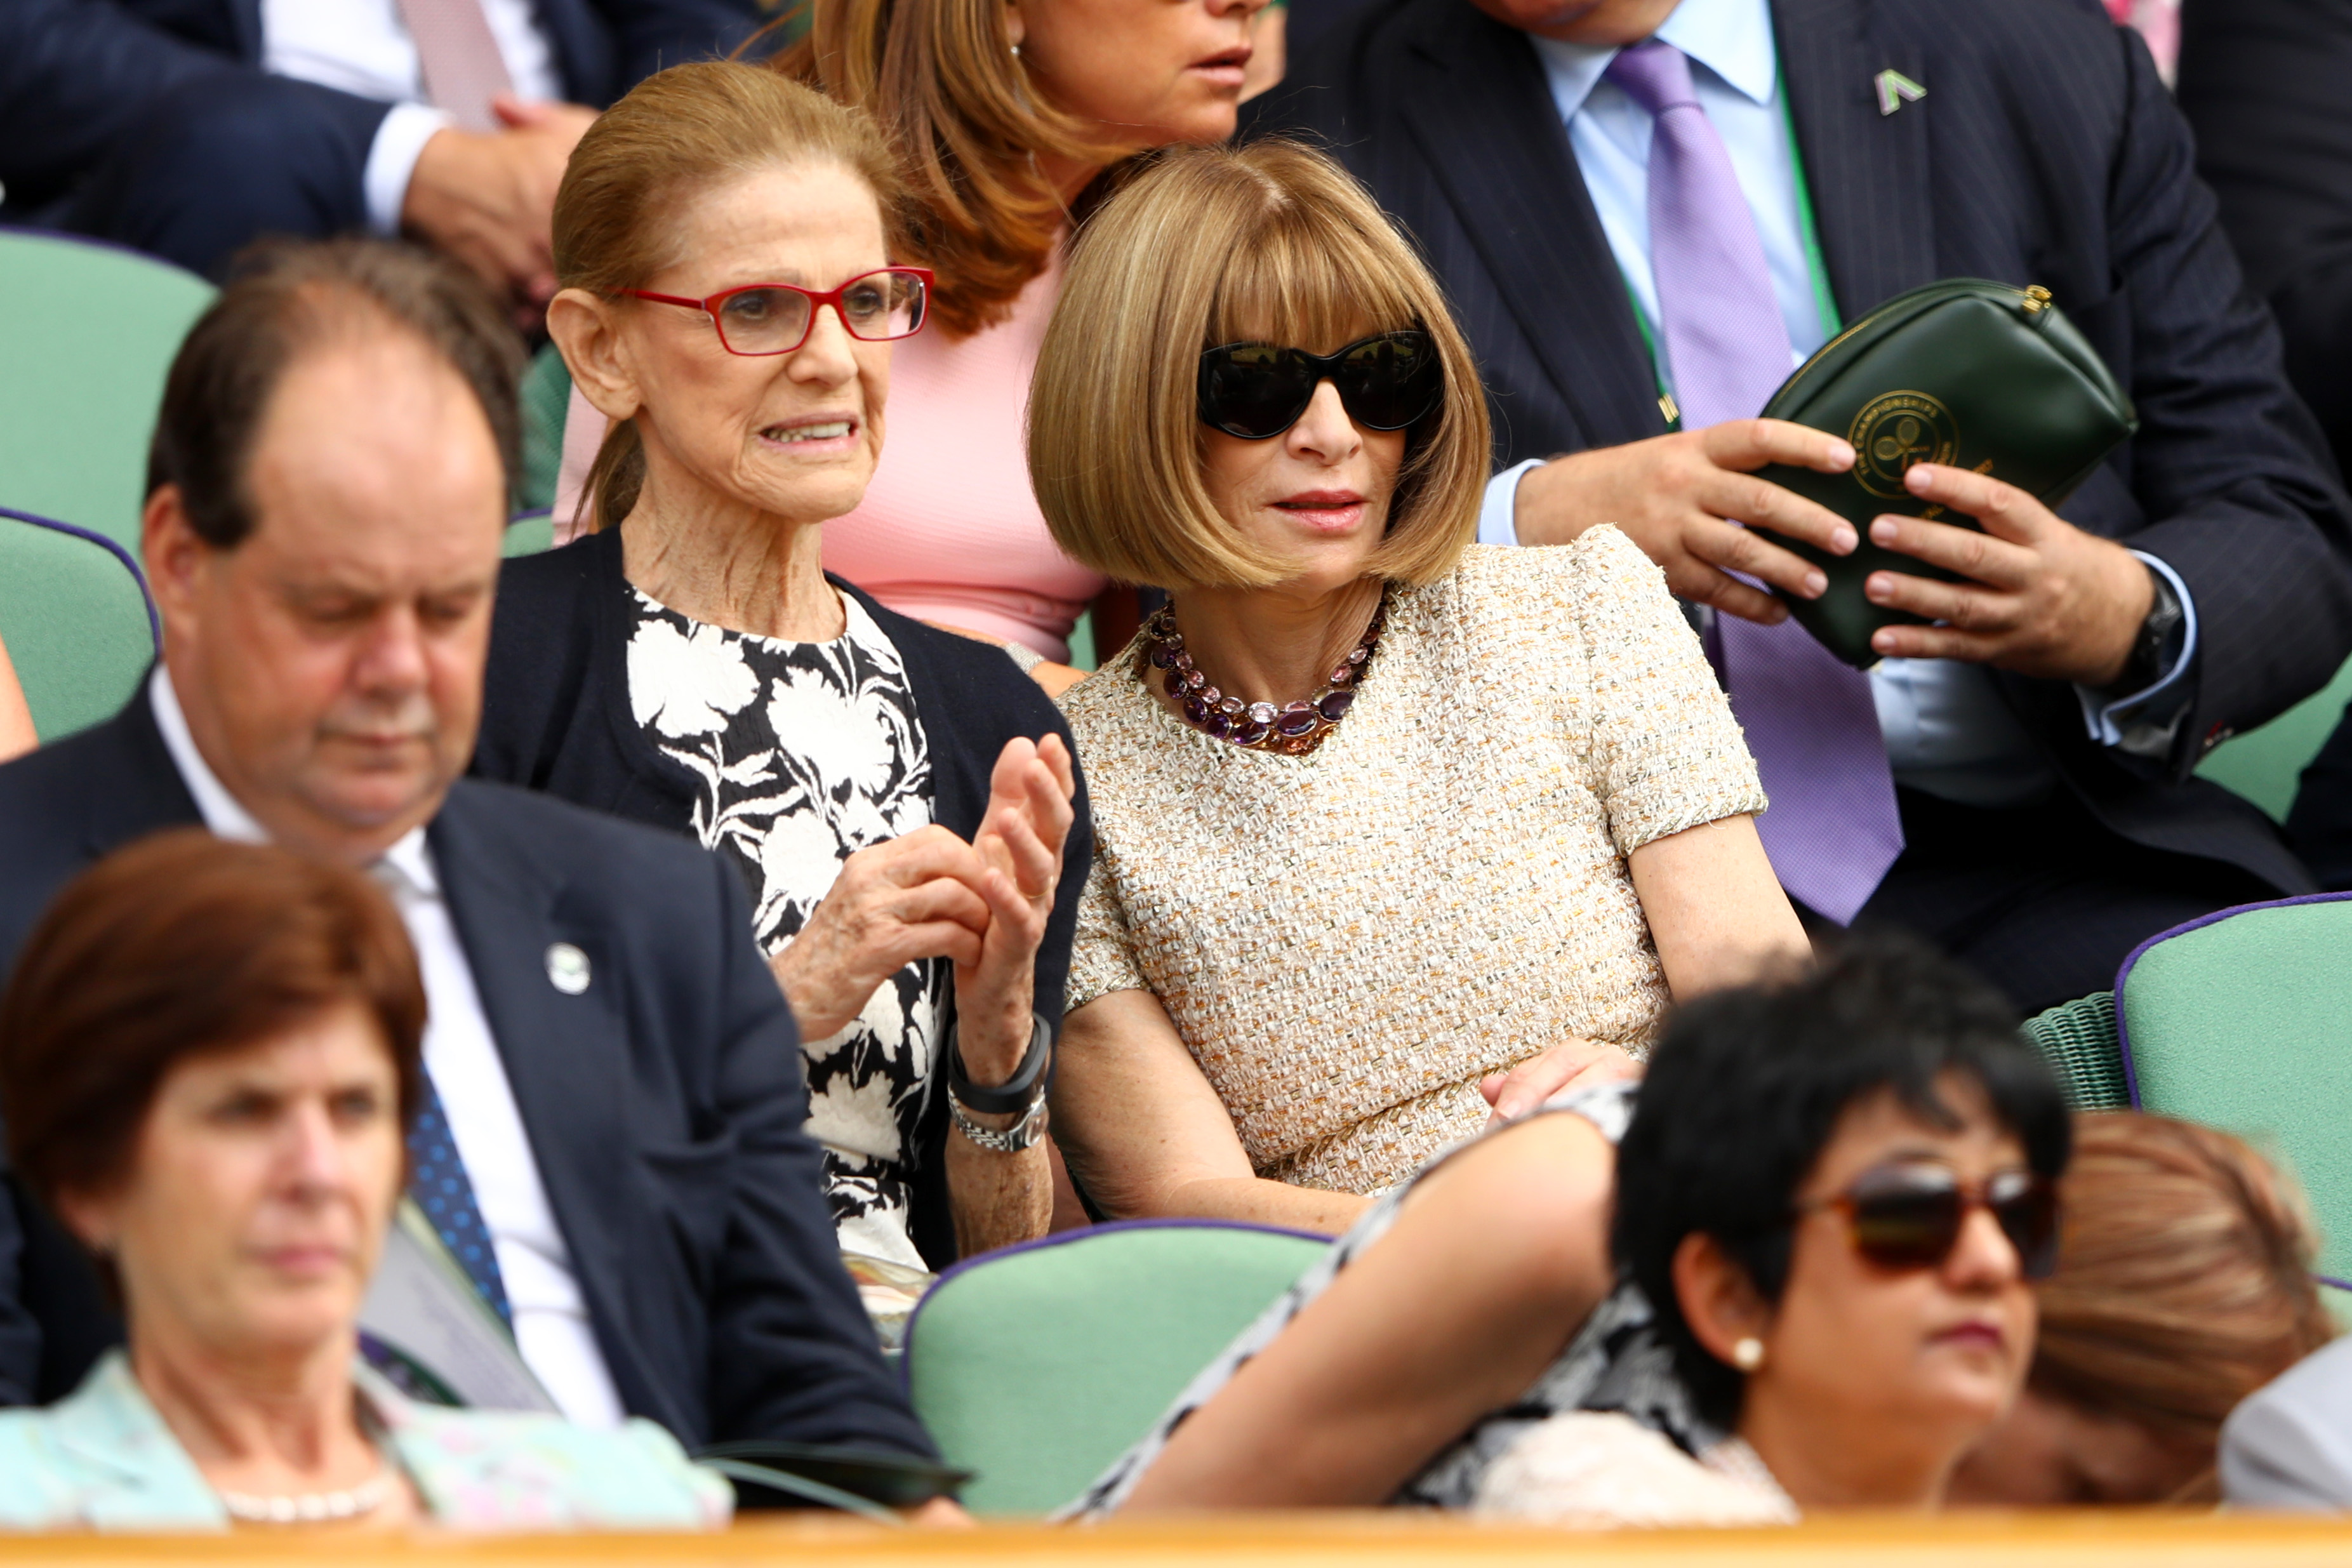 LONDON, ENGLAND - JULY 07: Dame Anna Wintour looks on from the centre court royal box on day five of the Wimbledon Lawn Tennis Championships at the All England Lawn Tennis and Croquet Club on July 7, 2017 in London, England. (Photo by Michael Steele/Getty Images)